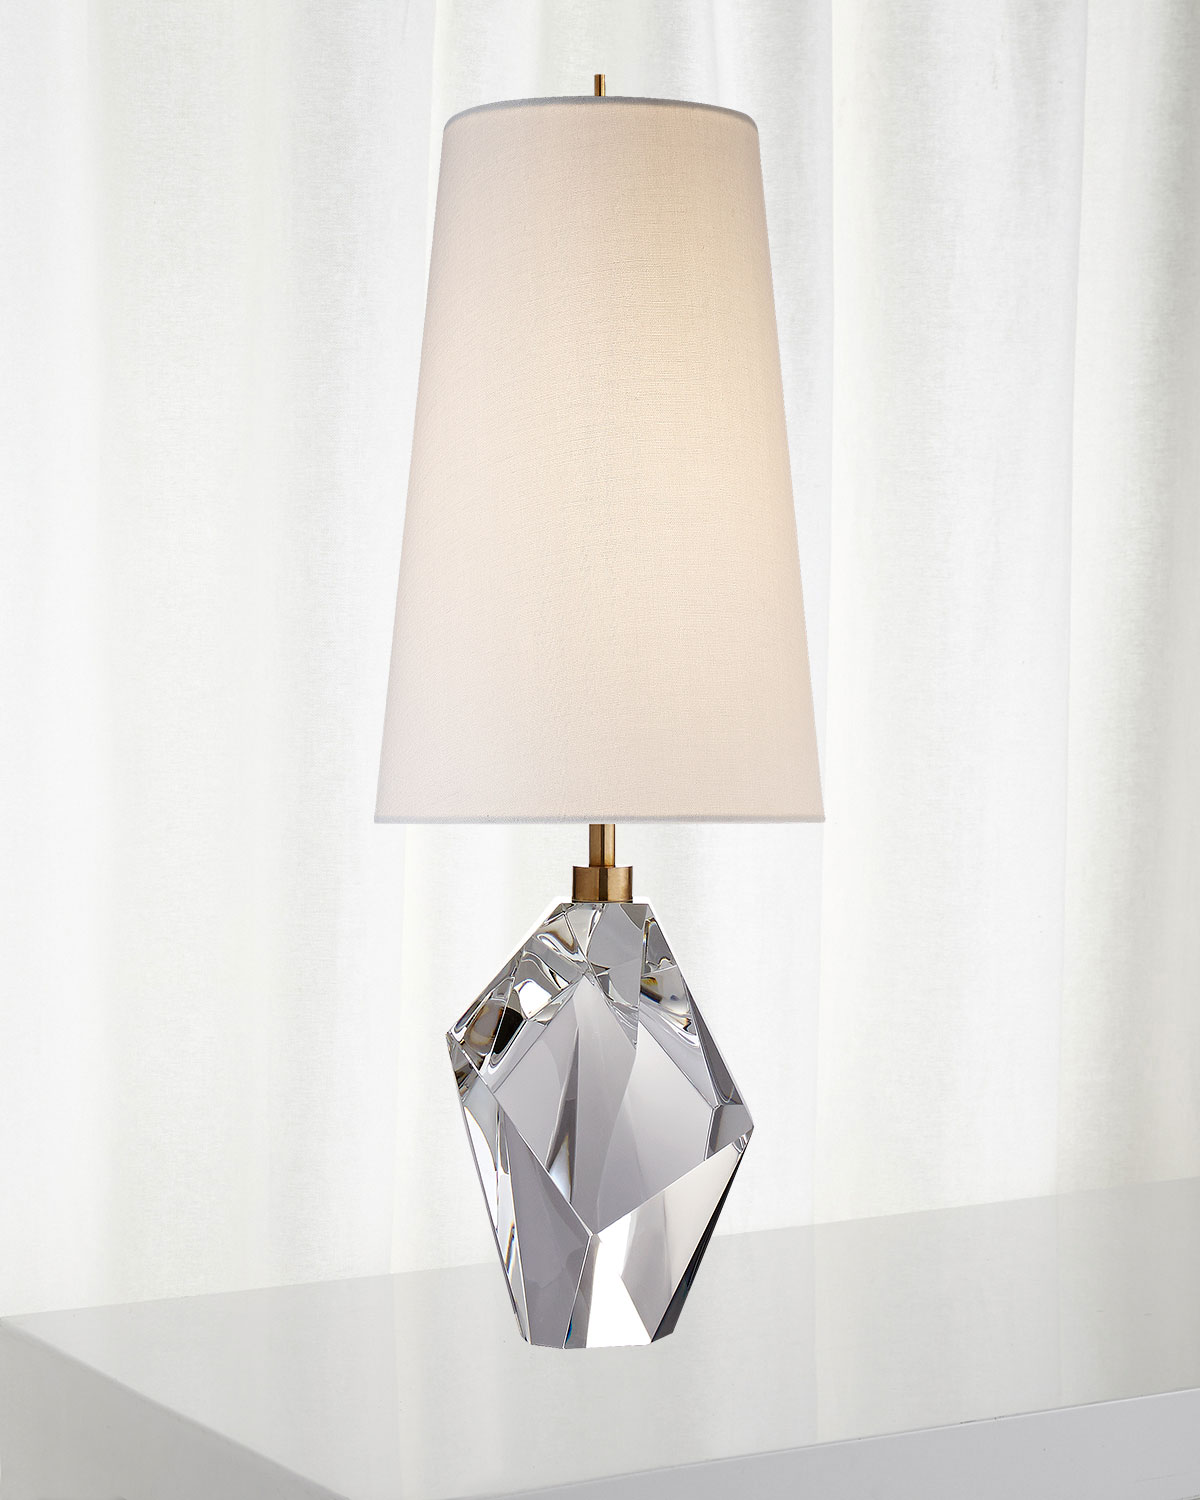 Kelly Wearstler HALCYON ACCENT TABLE LAMP